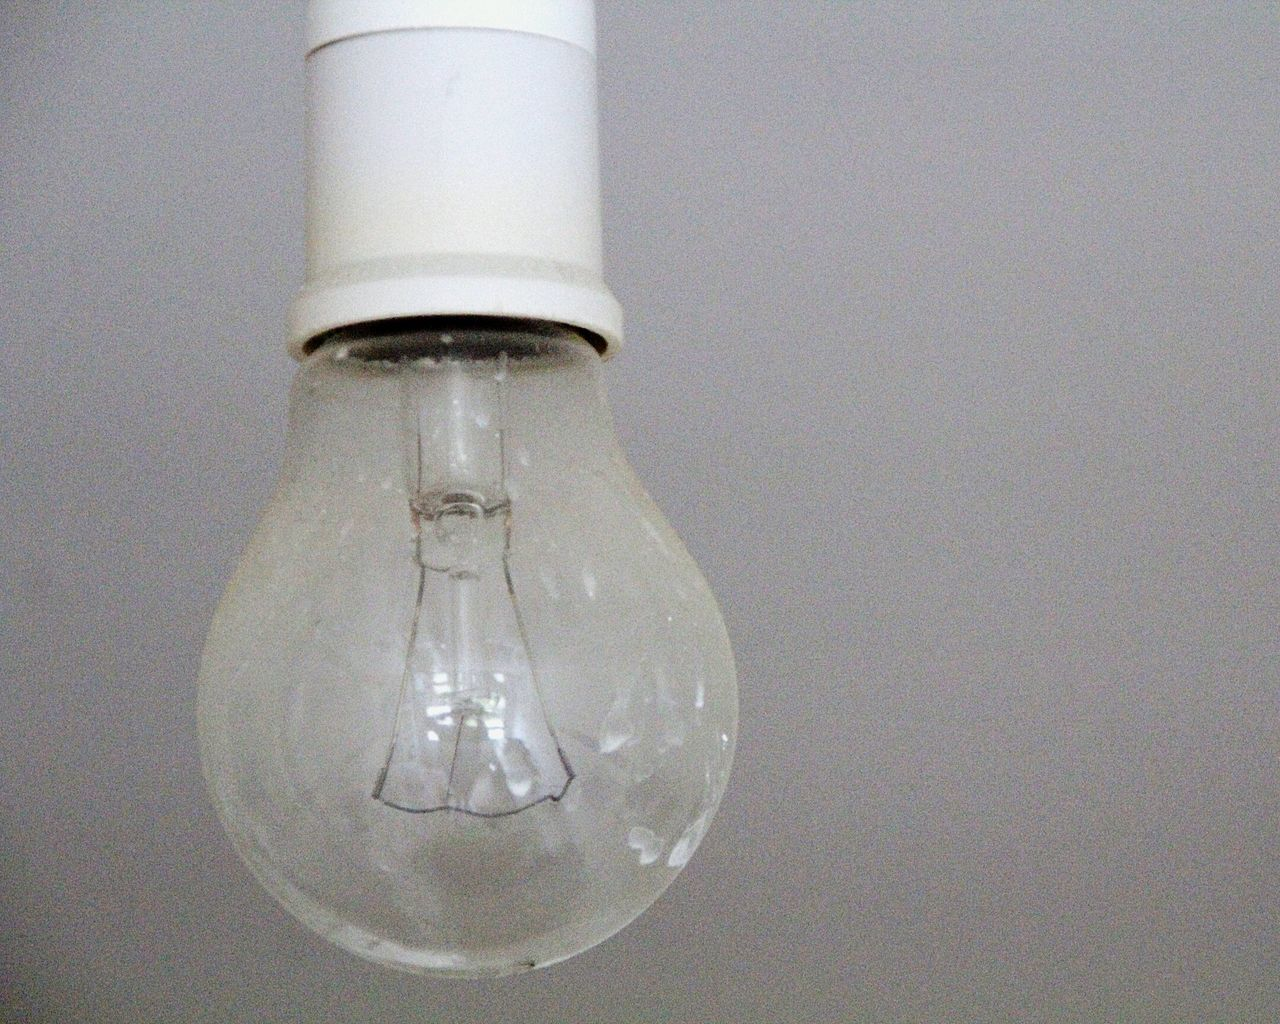 no people, close-up, bottle, light bulb, indoors, filament, technology, day